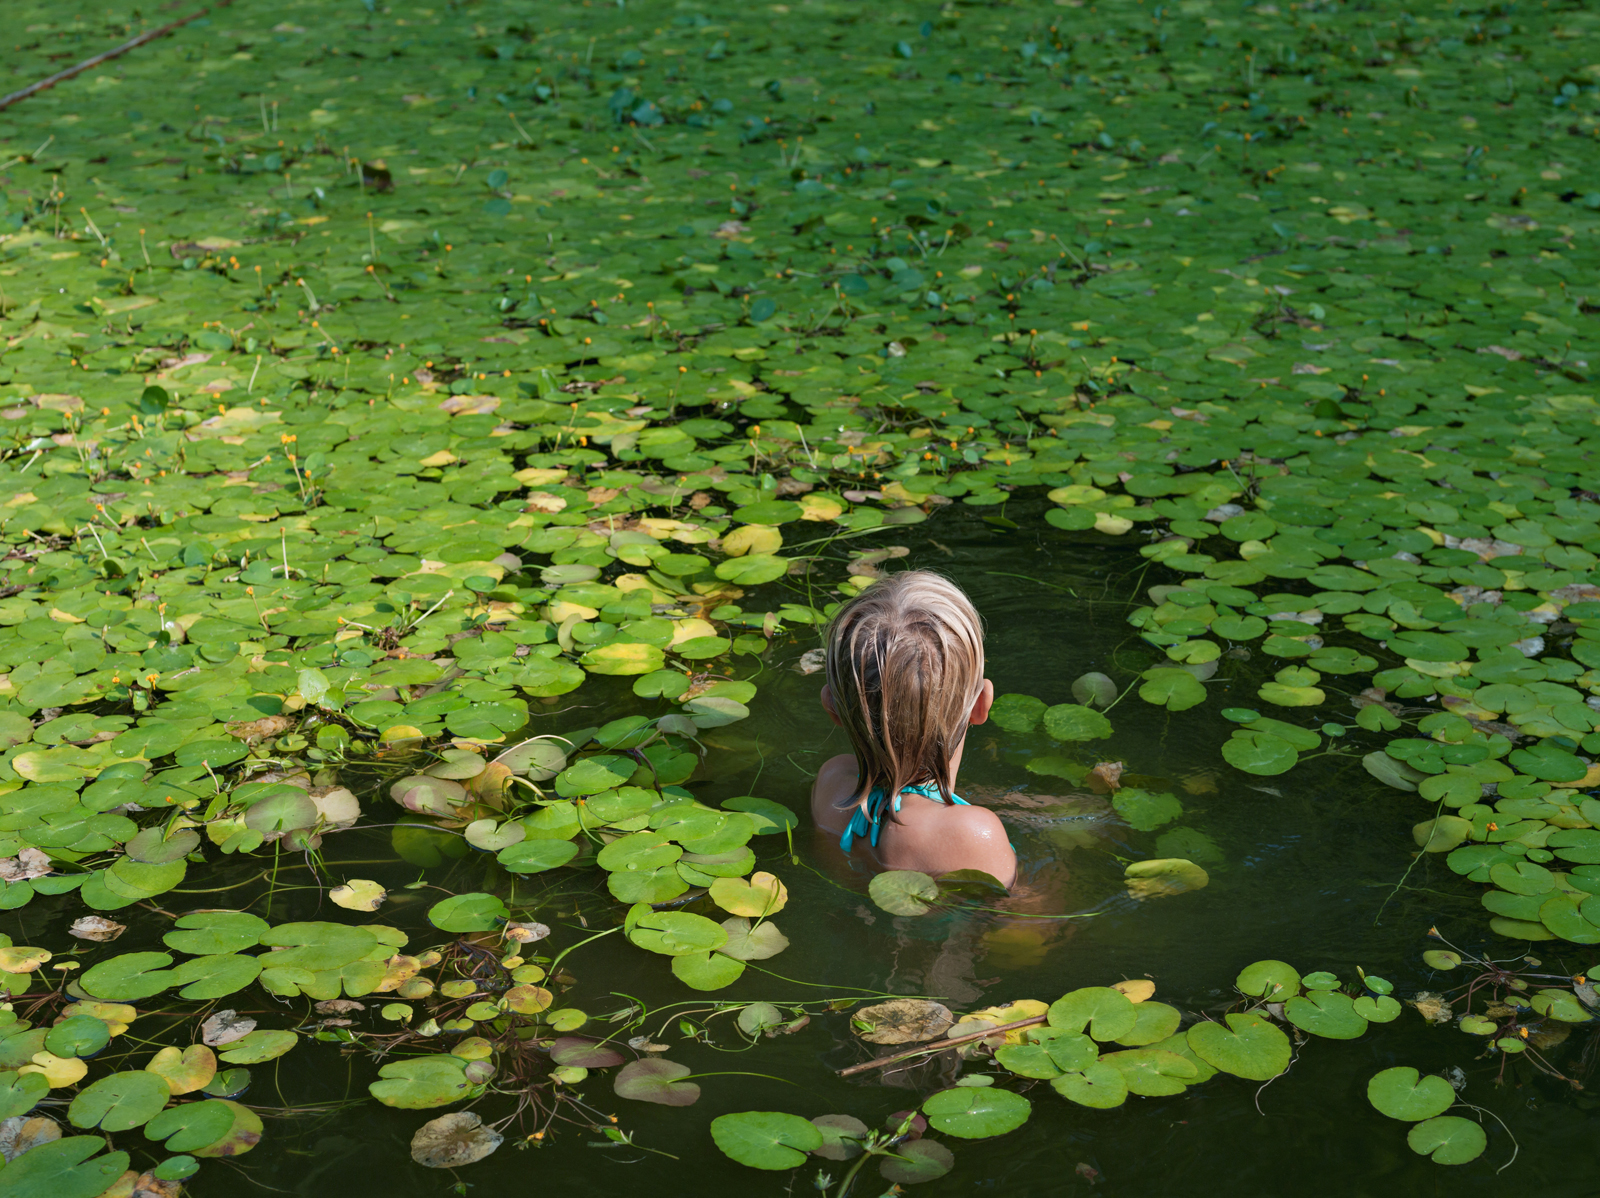 Maddie with invasive water lilies, North Carolina. © Lucas Foglia, courtesy of Michael Hoppen Gallery, London.